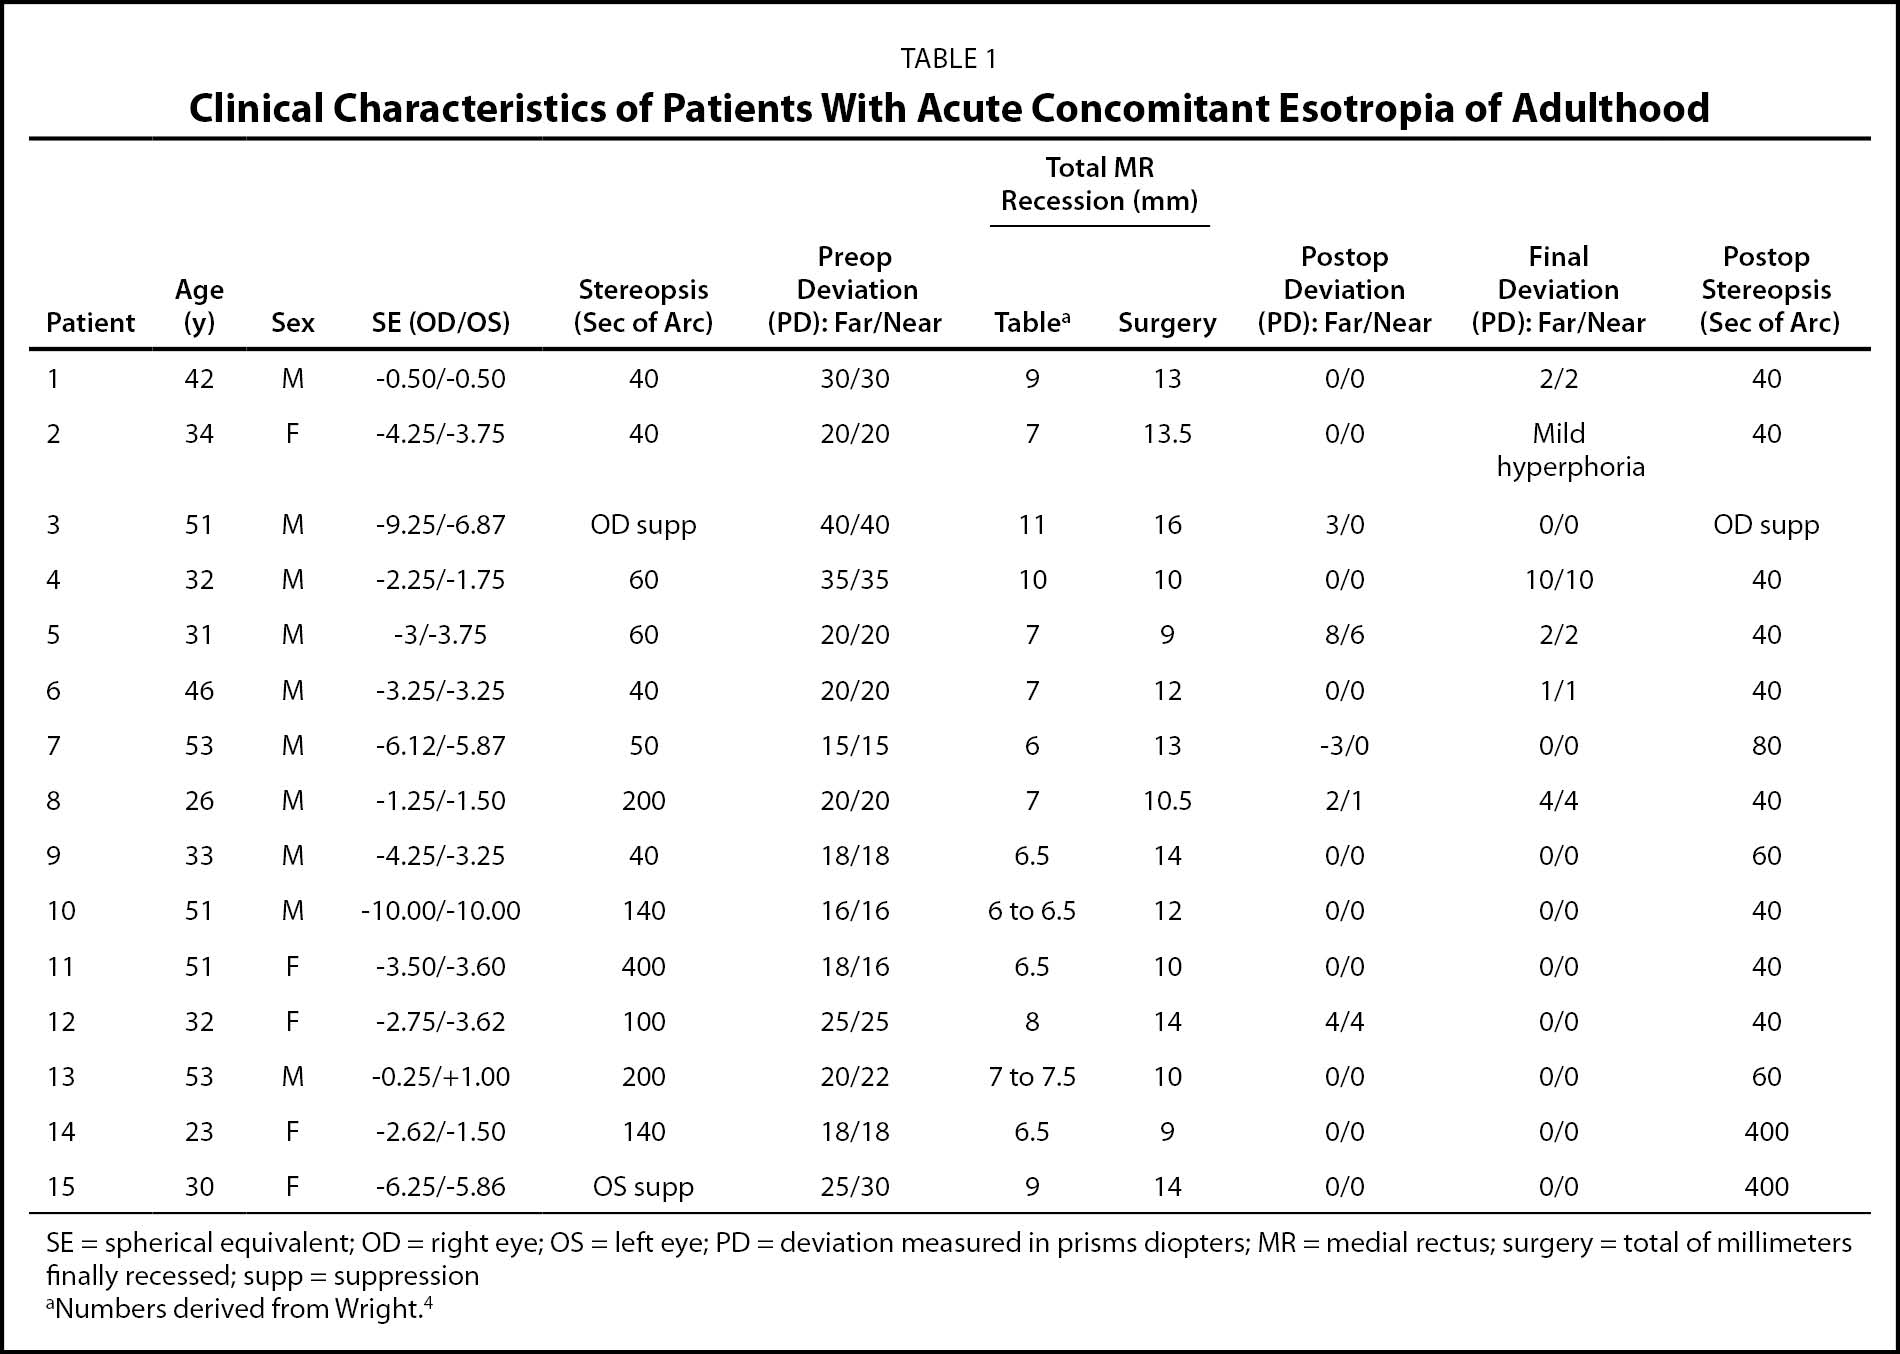 Clinical Characteristics of Patients With Acute Concomitant Esotropia of Adulthood